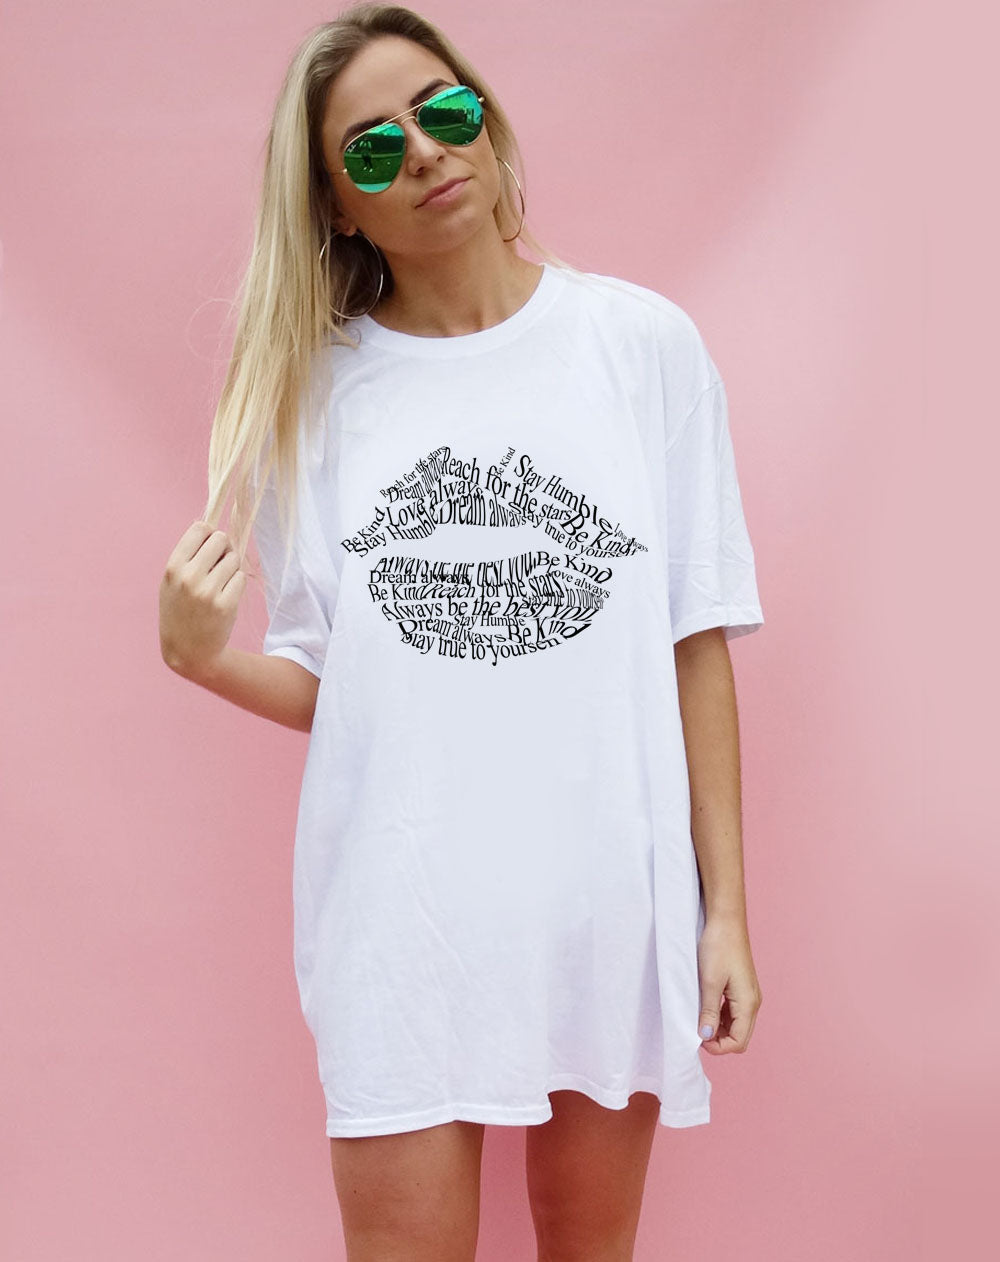 White Tshirt Dress with Positive Slogan Lip Print